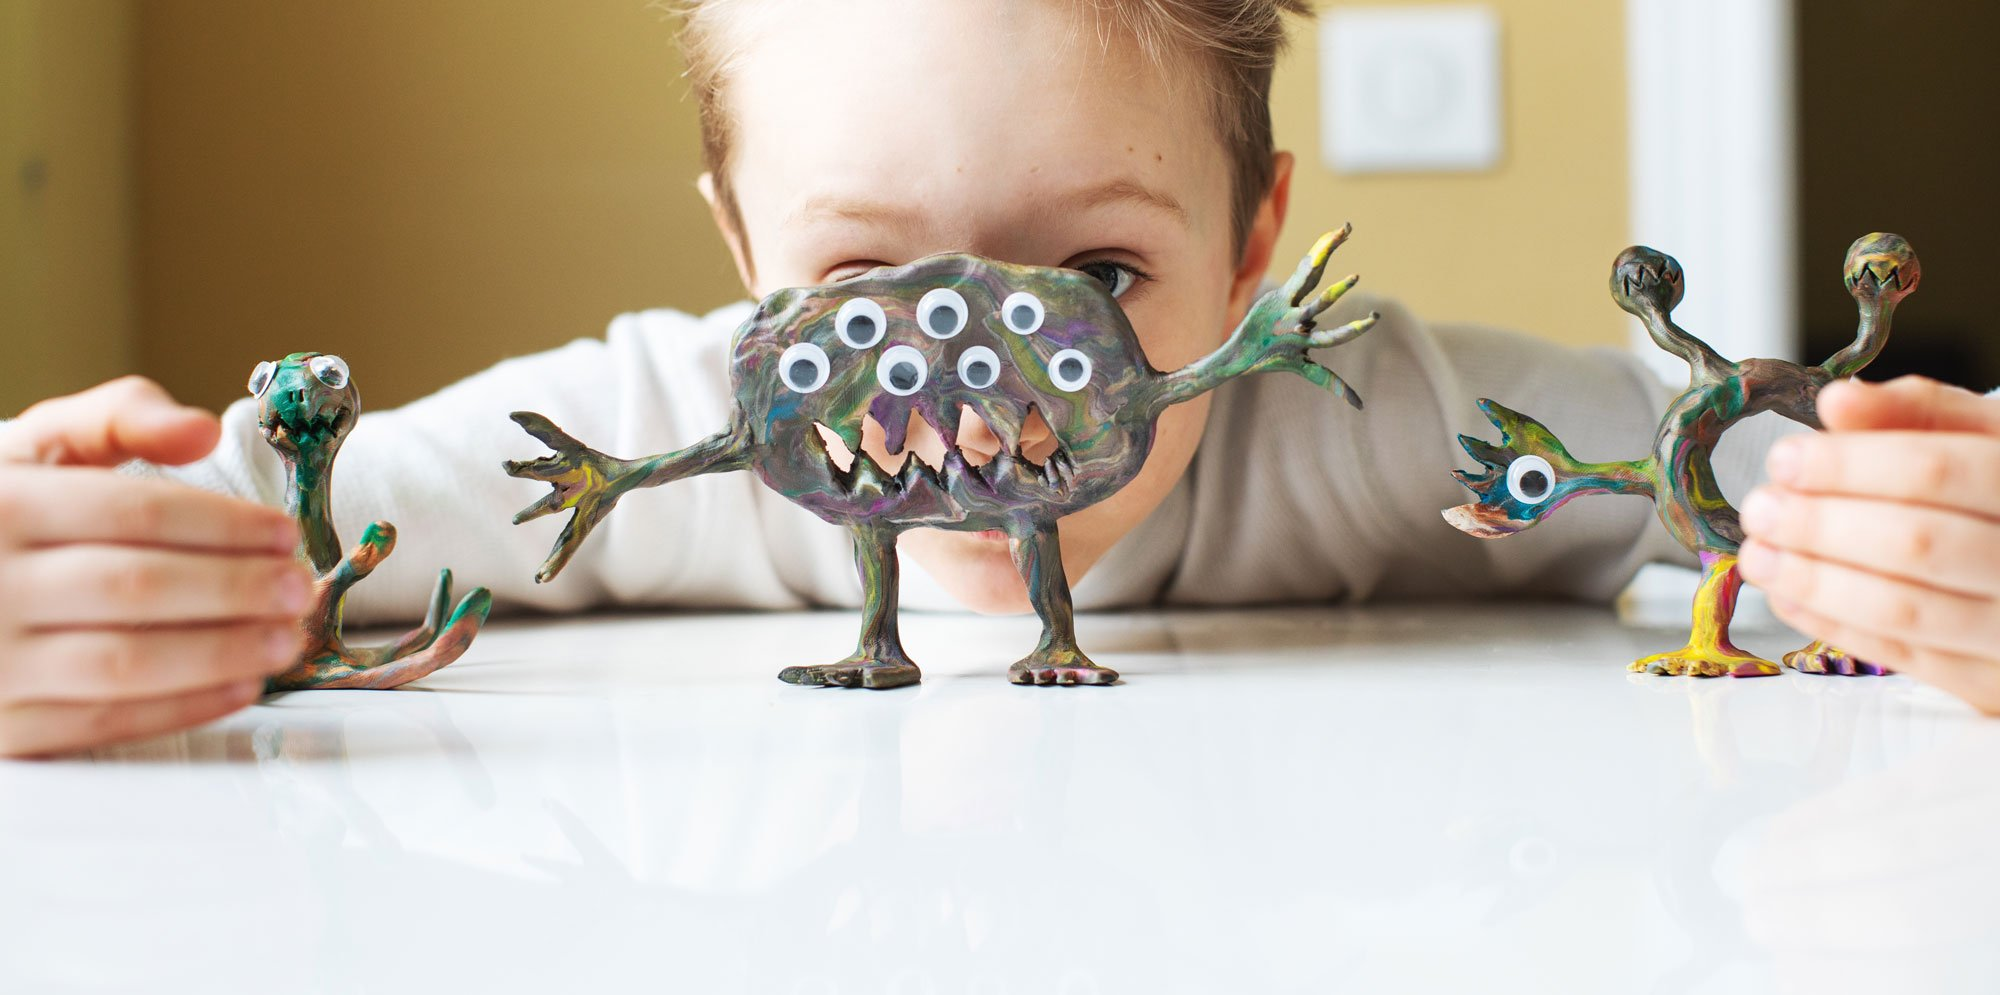 AniMates: a boy hiding behind little monsters made from clay with a number of goggly eyes